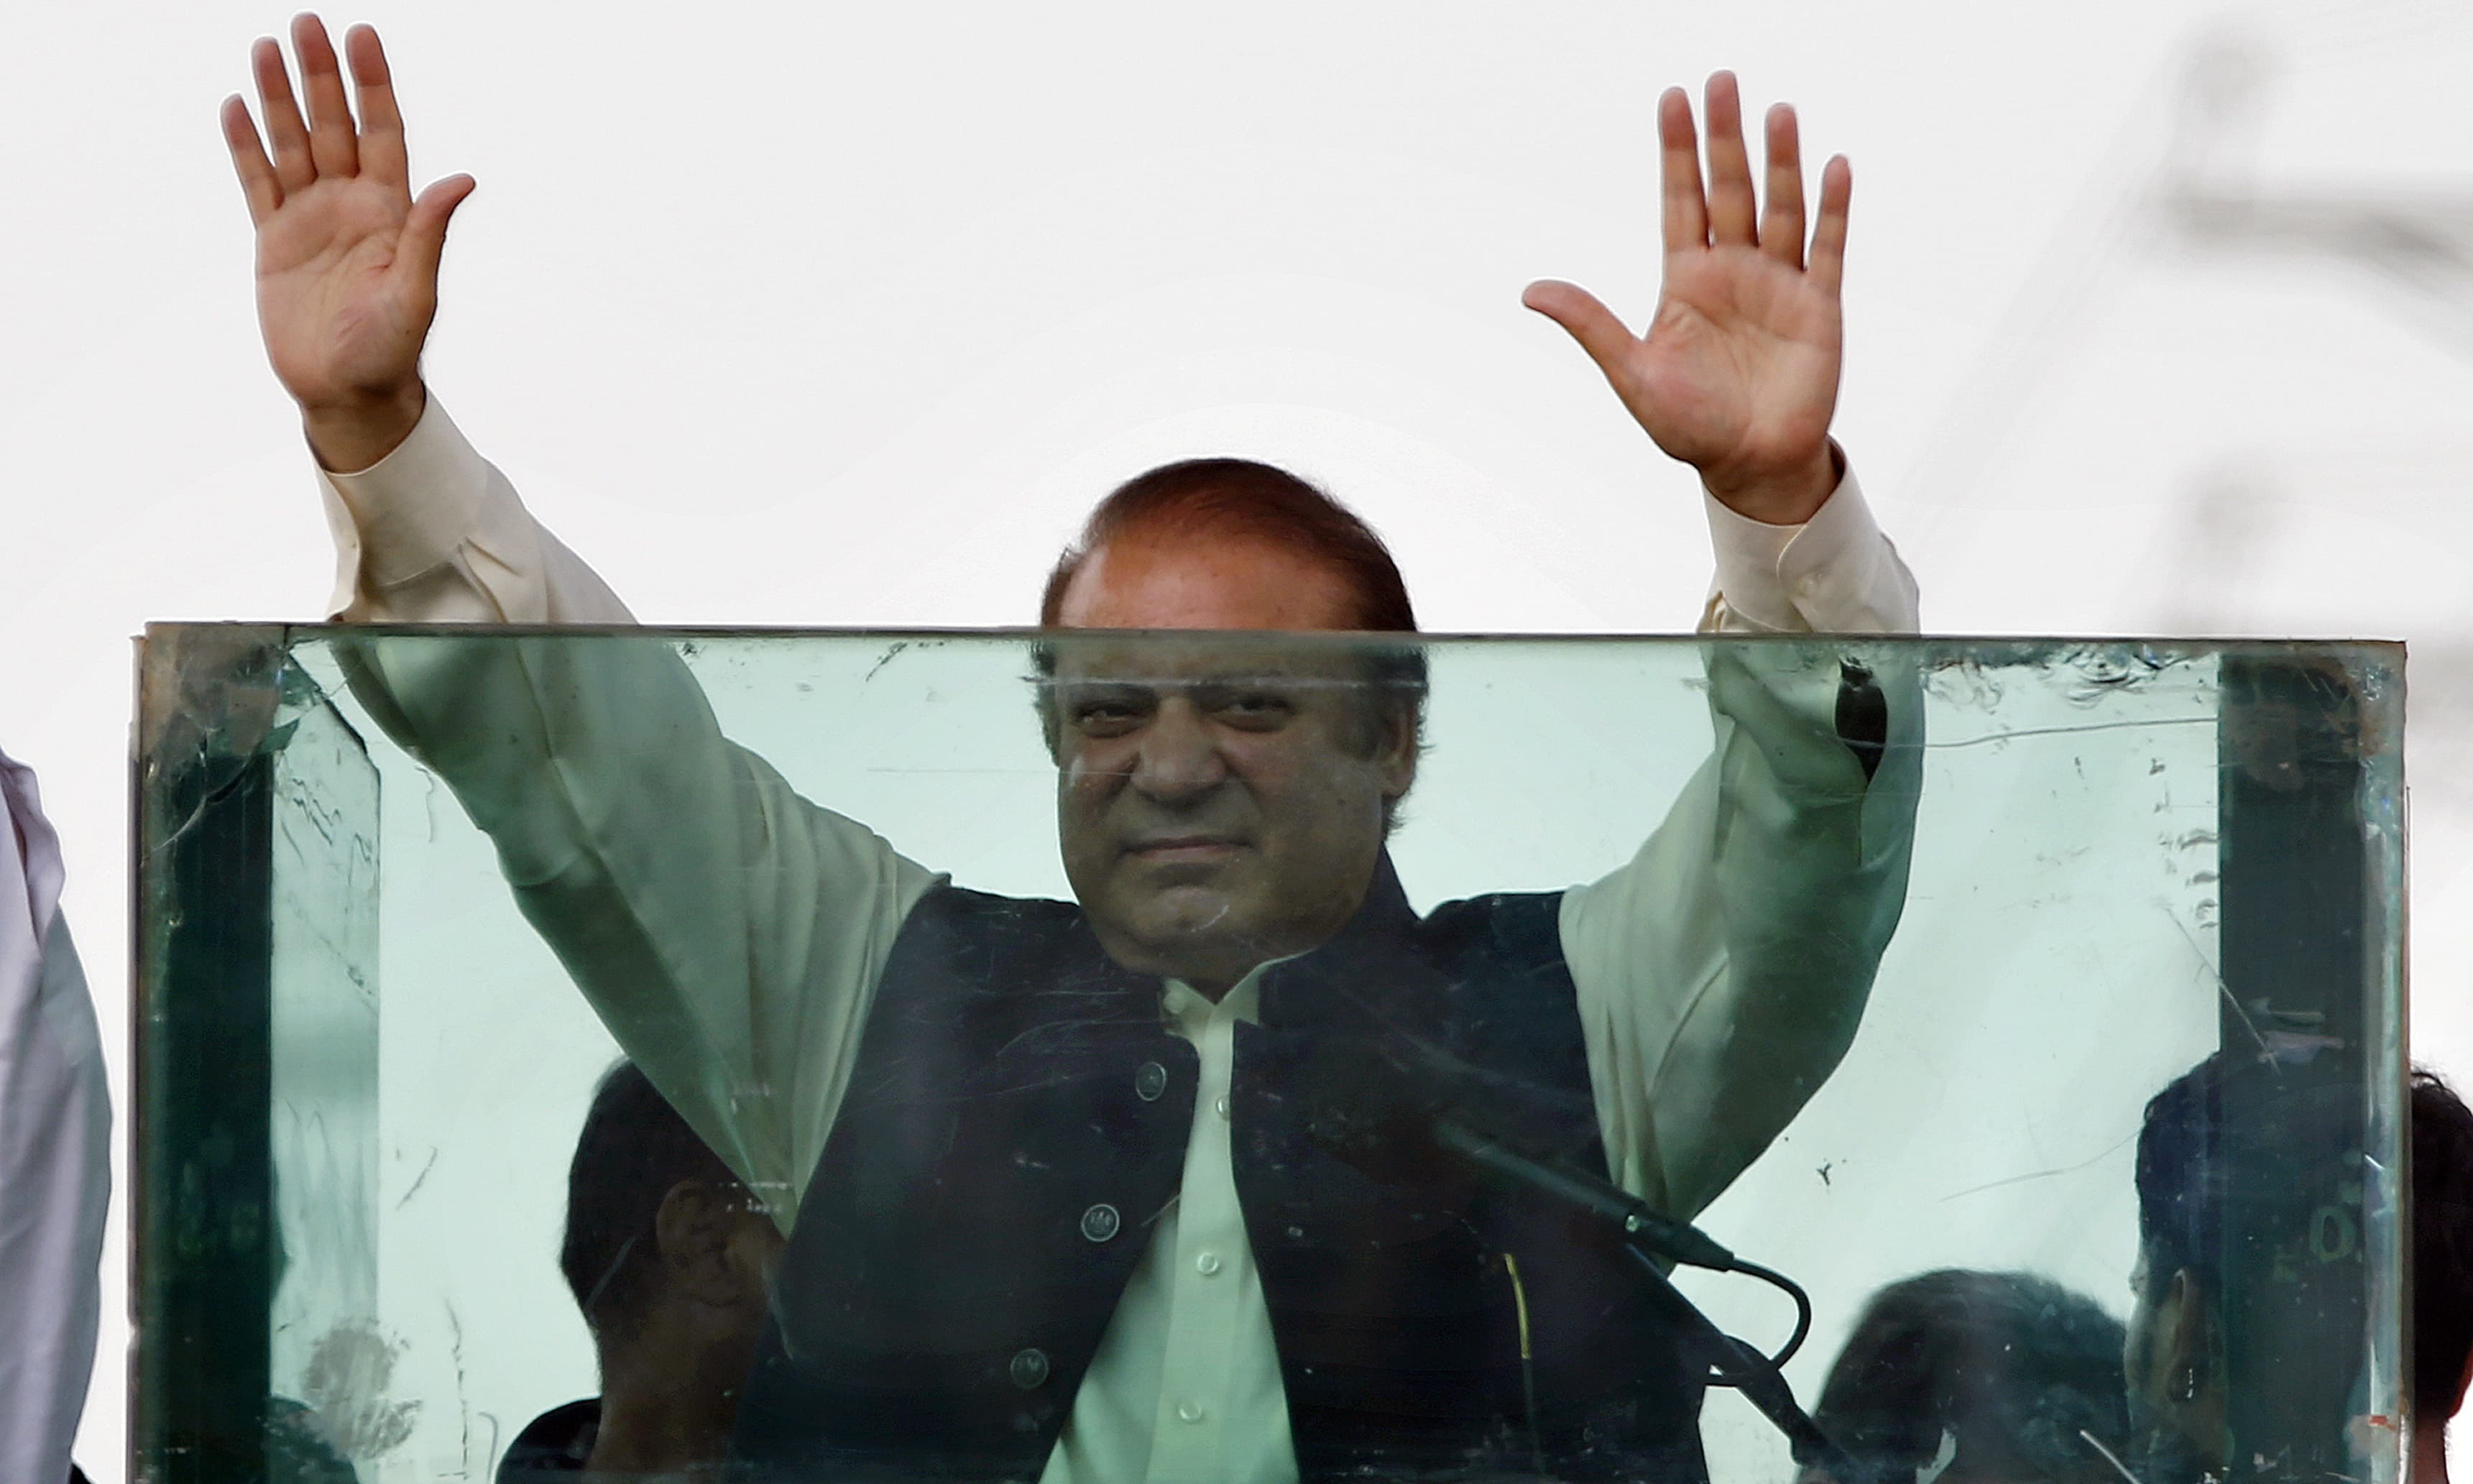 Nawaz Sharif raises his hands to respond to his supporters during a rally in Muridke. —AP